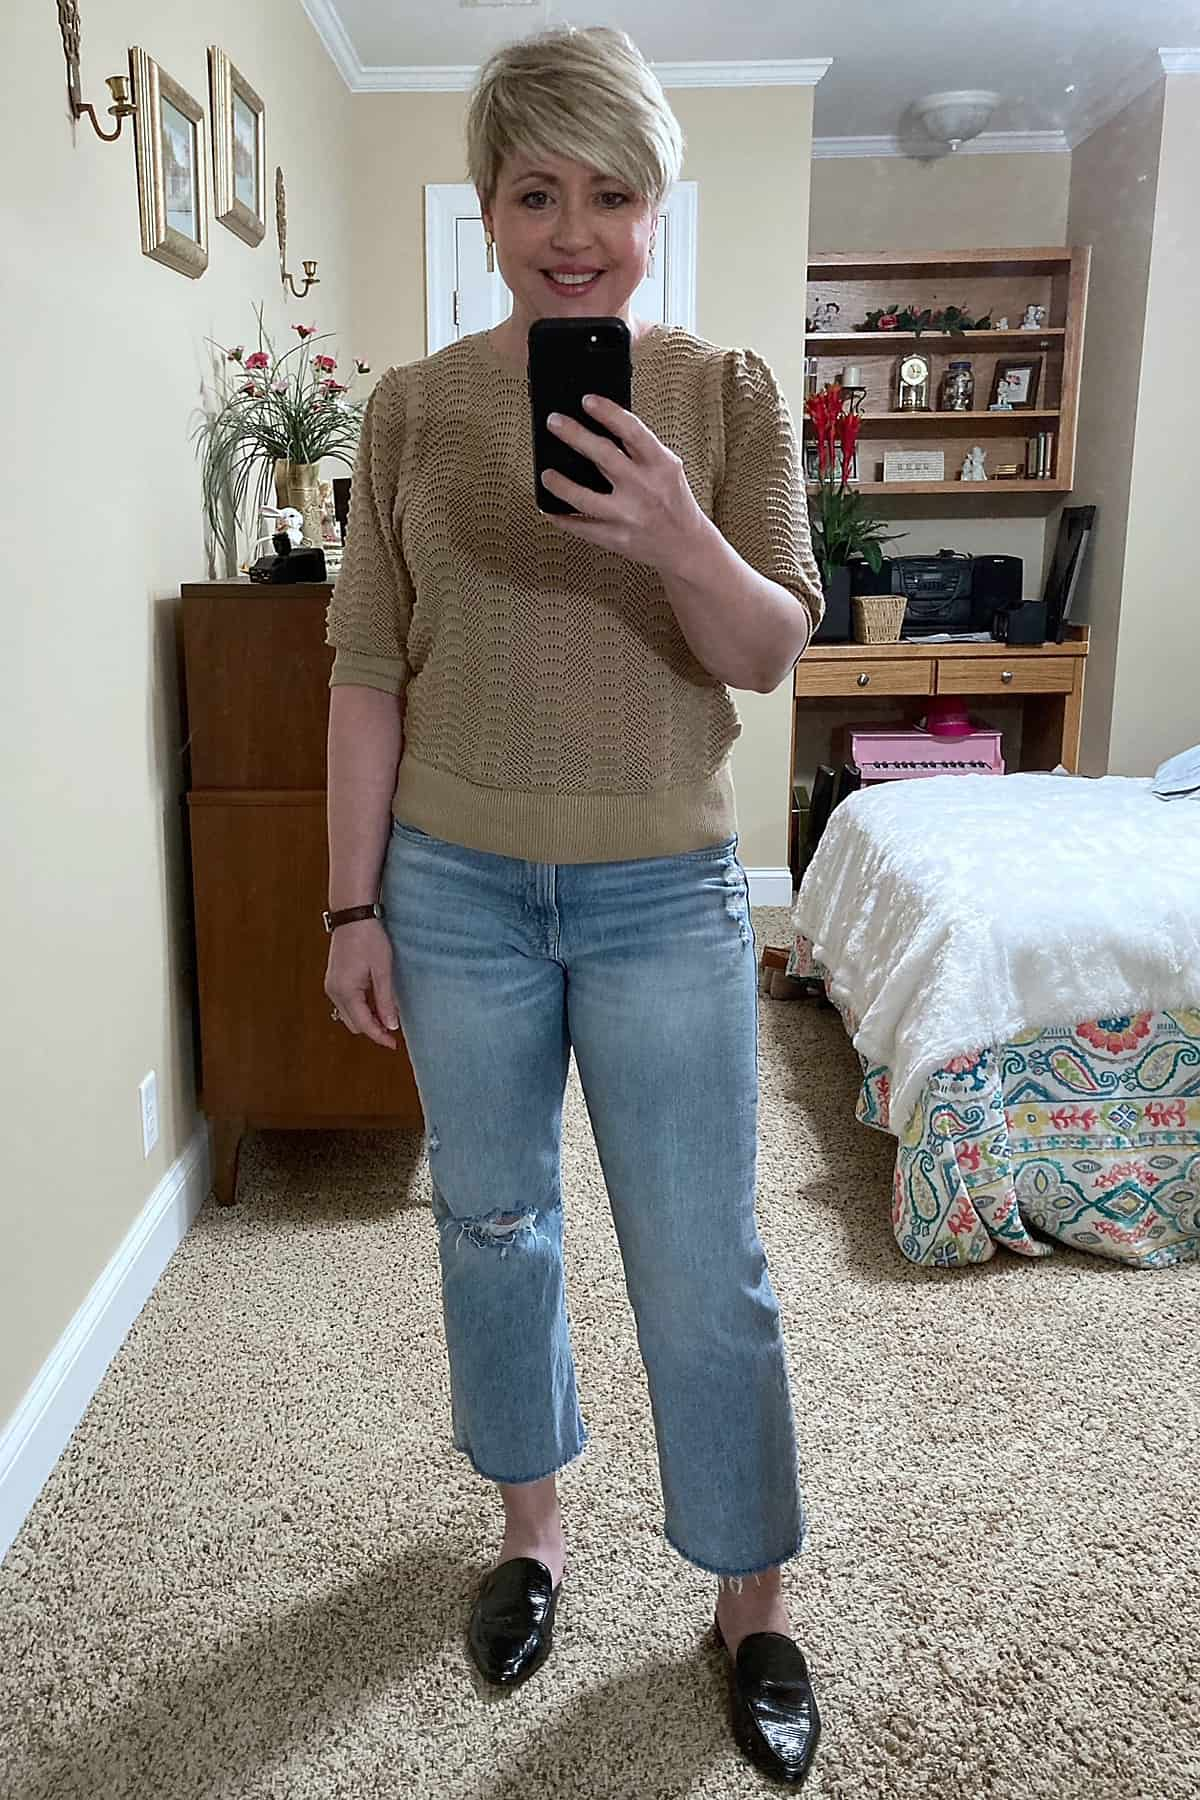 women's spring casual outfit with lightwash jeans